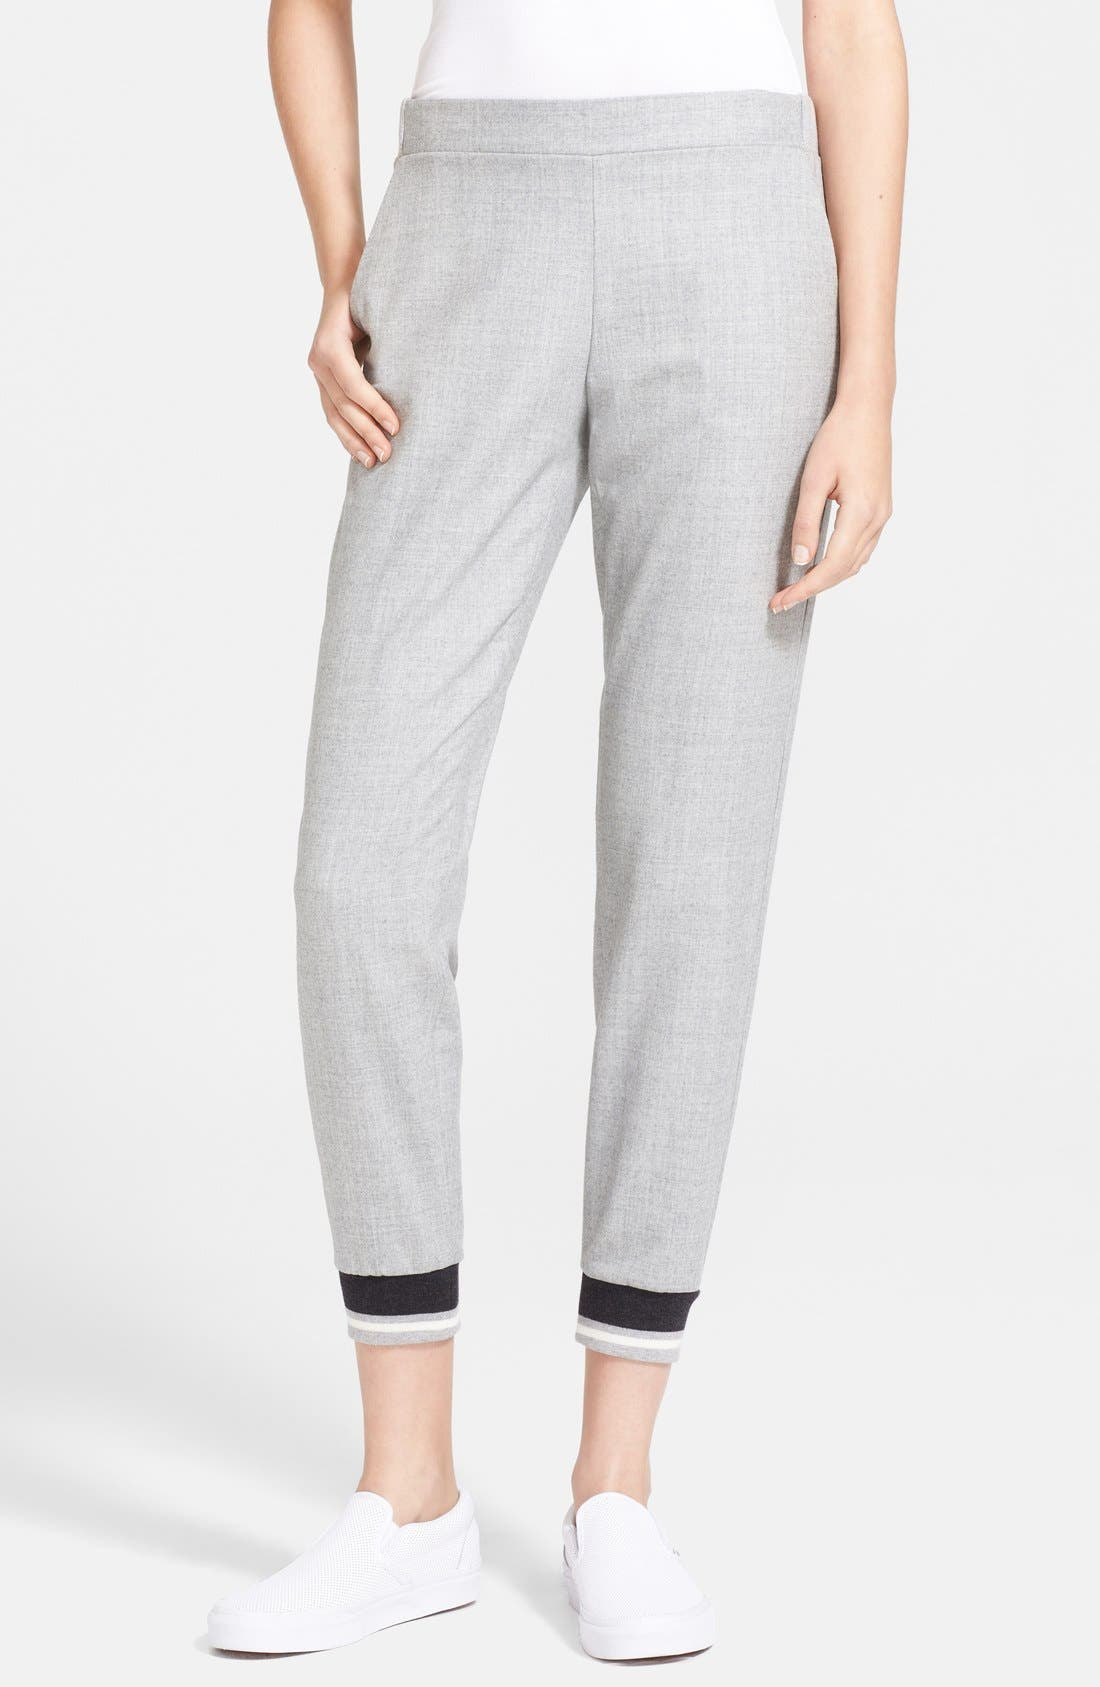 THEORY 'Rumdiby' Flannel Track Pants, Main, color, 020